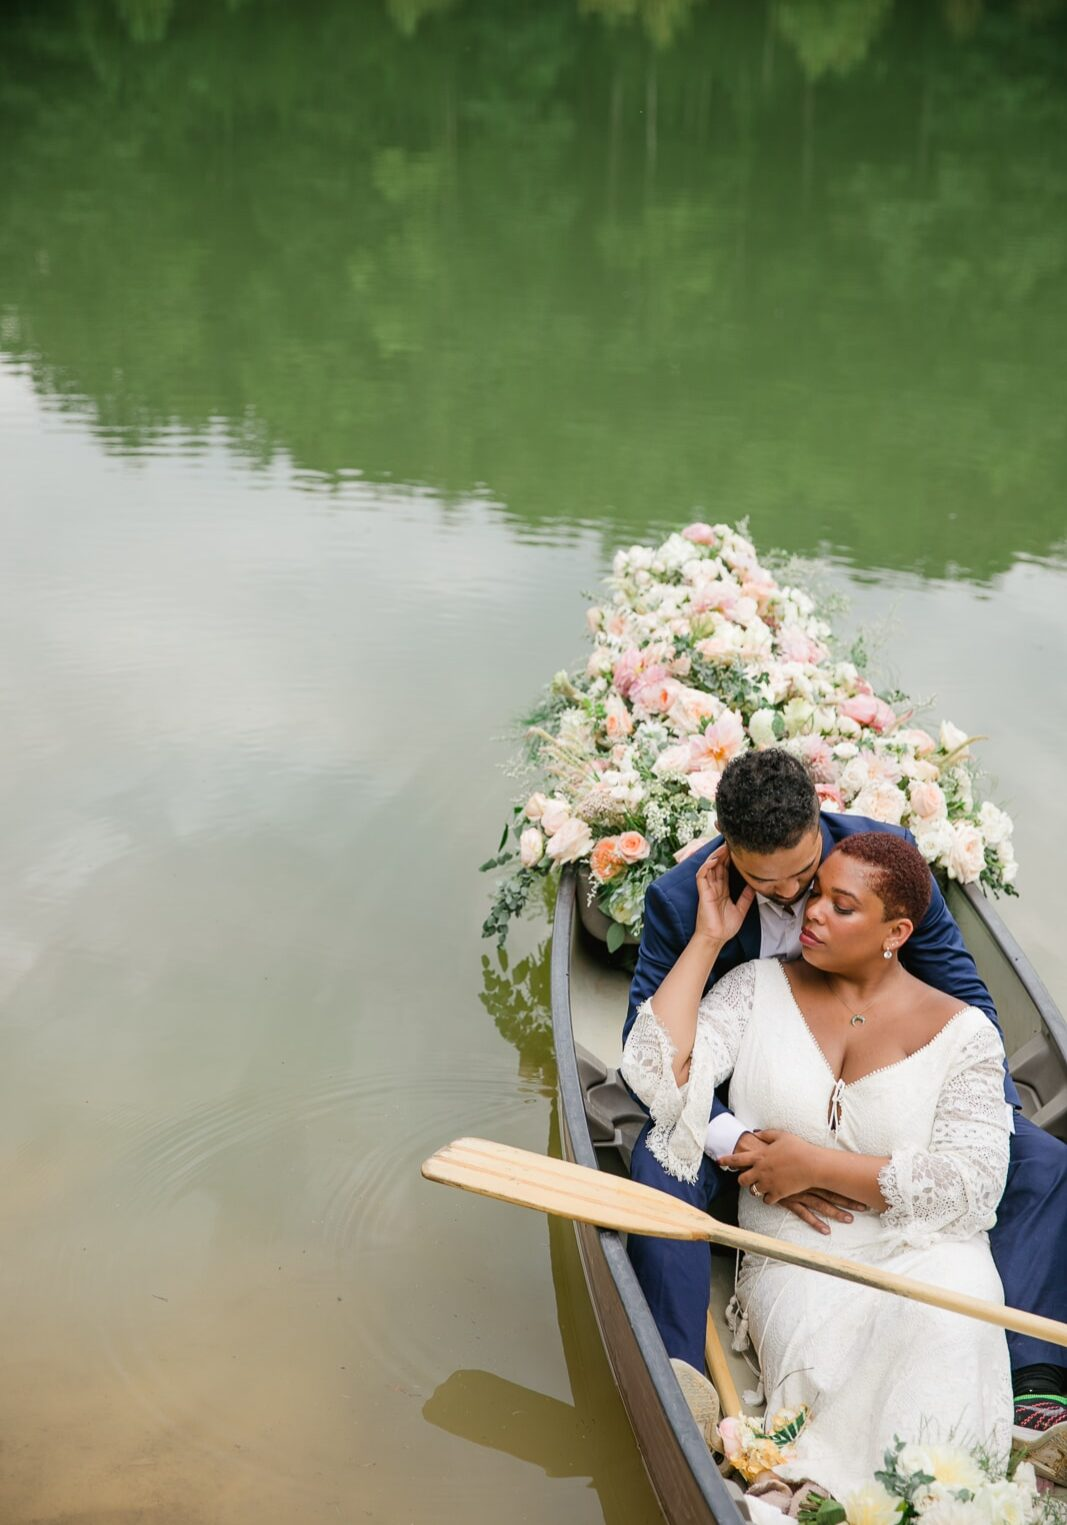 Red River Gorge Elopement styled Floral Canoe with Gorgeous Black Couple